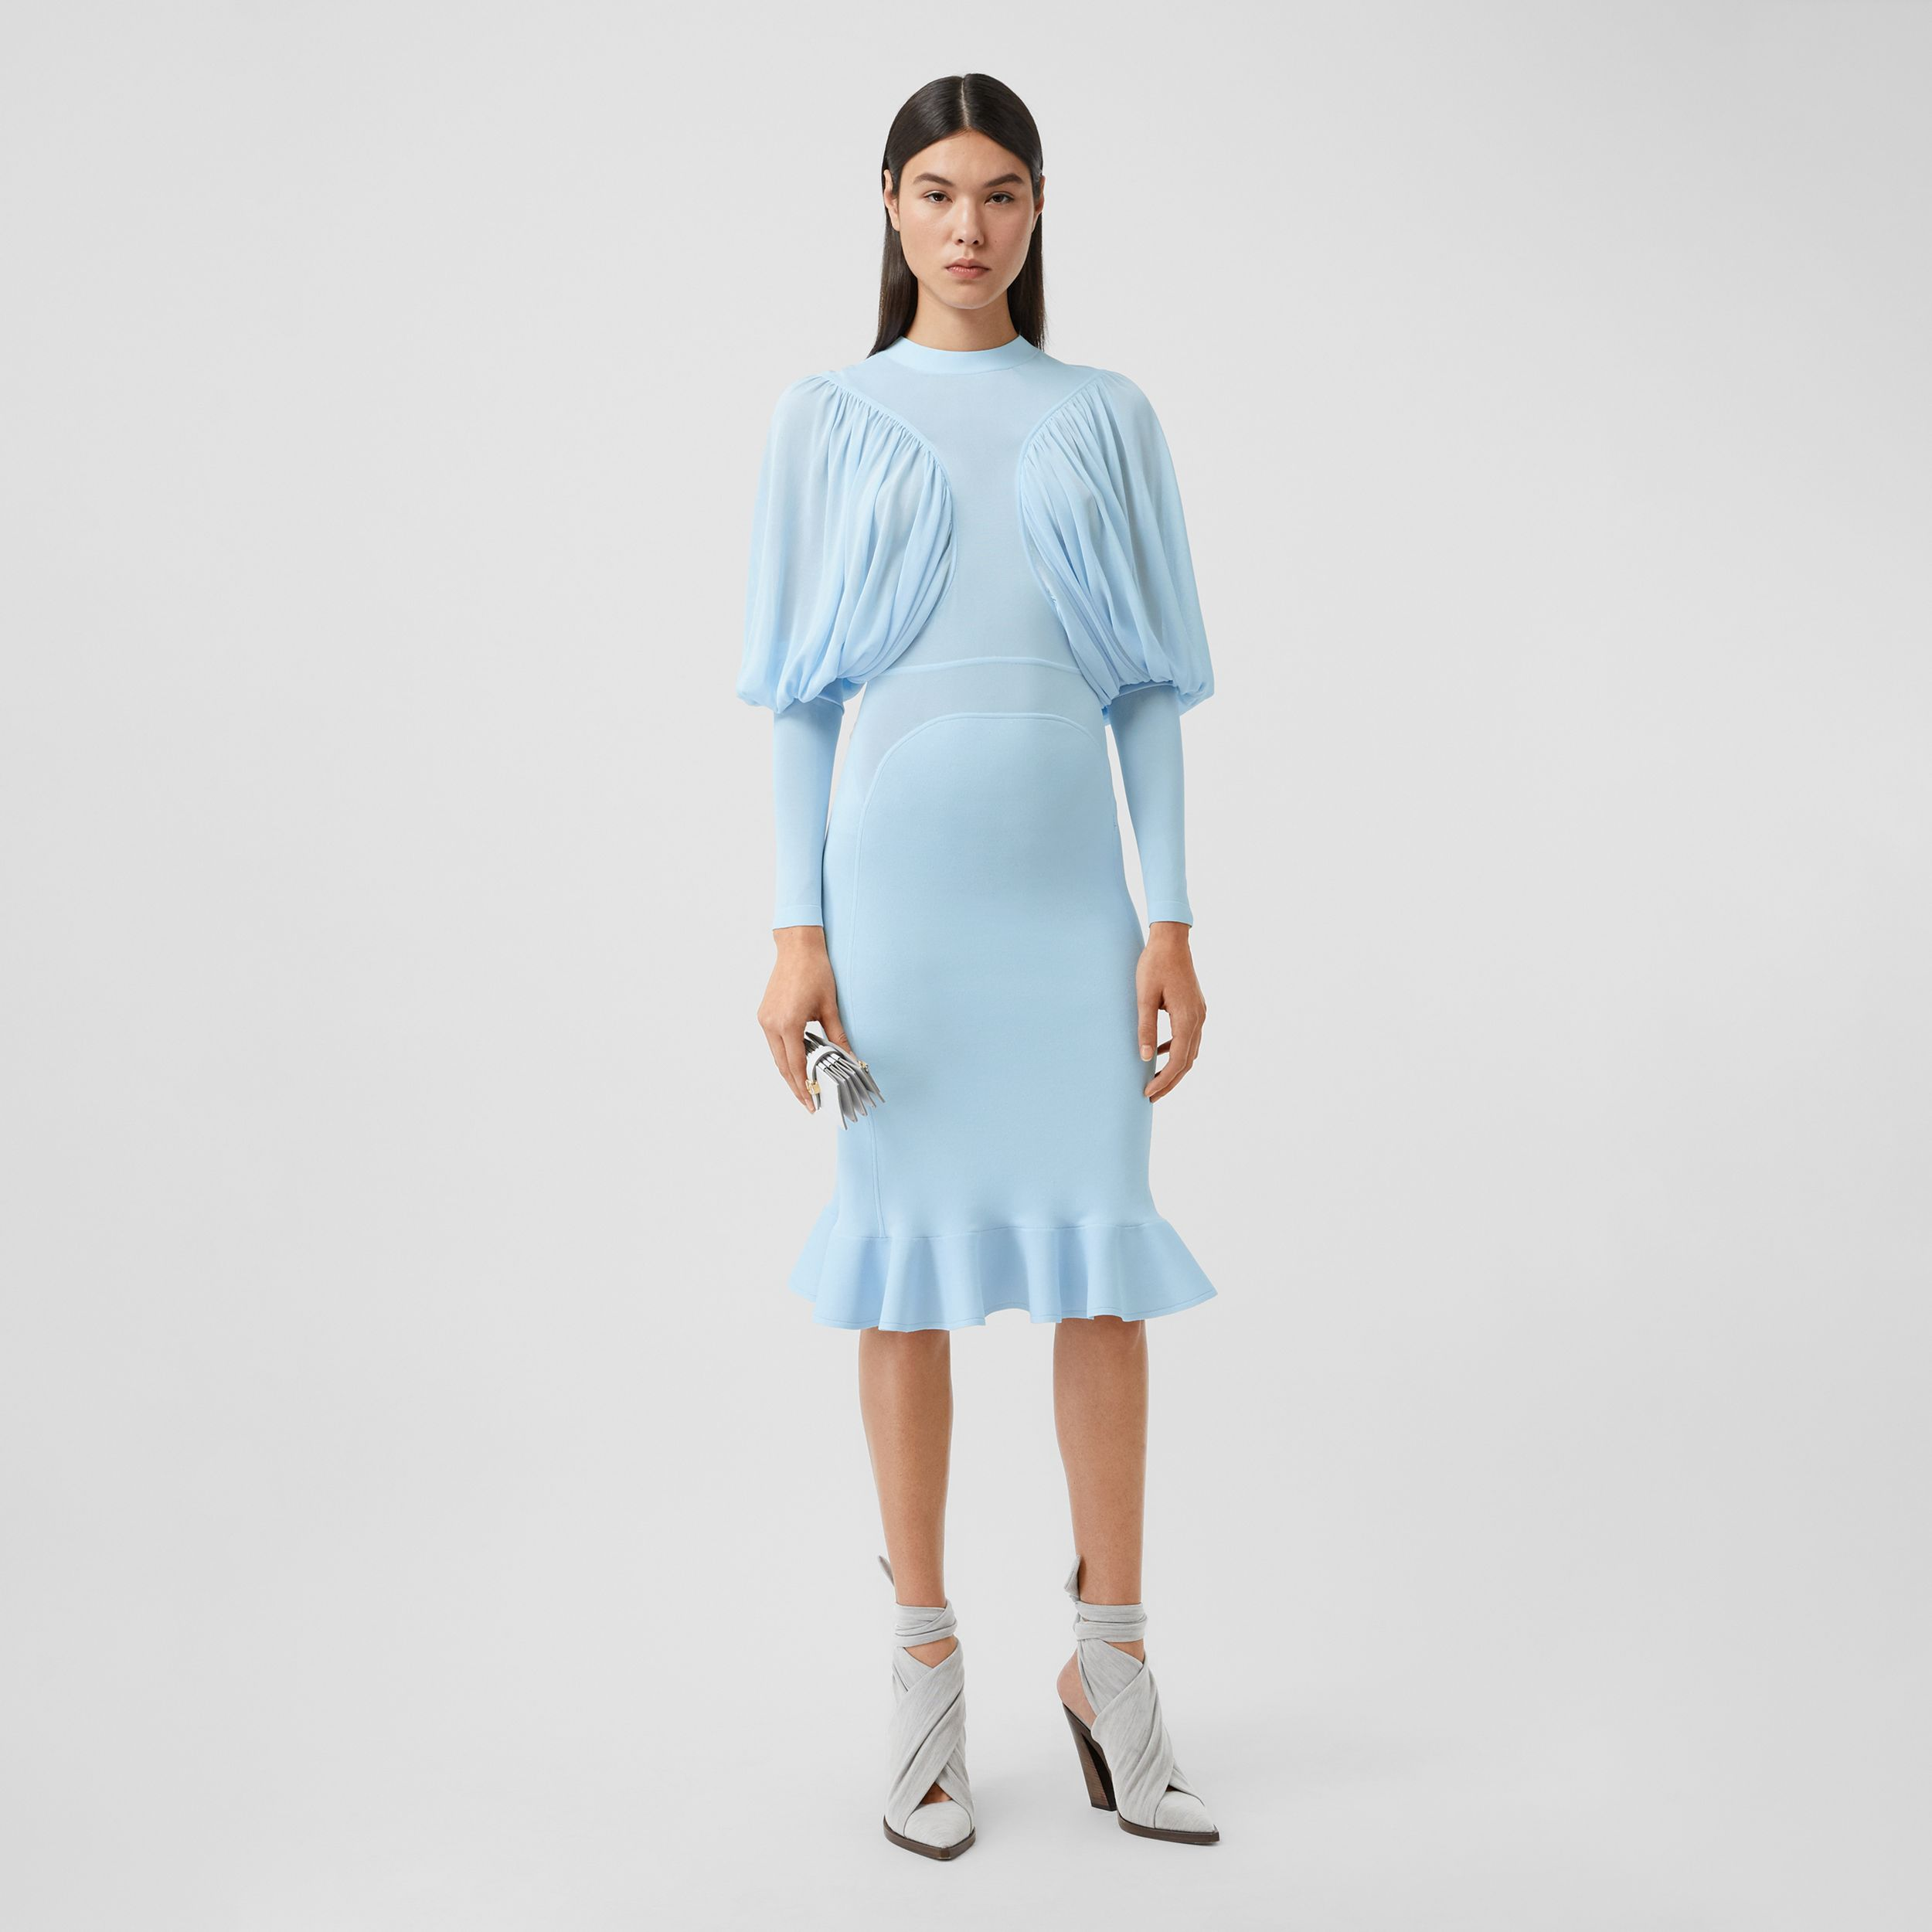 Puff-sleeve Jersey Dress in Pale Blue - Women | Burberry Canada - 1